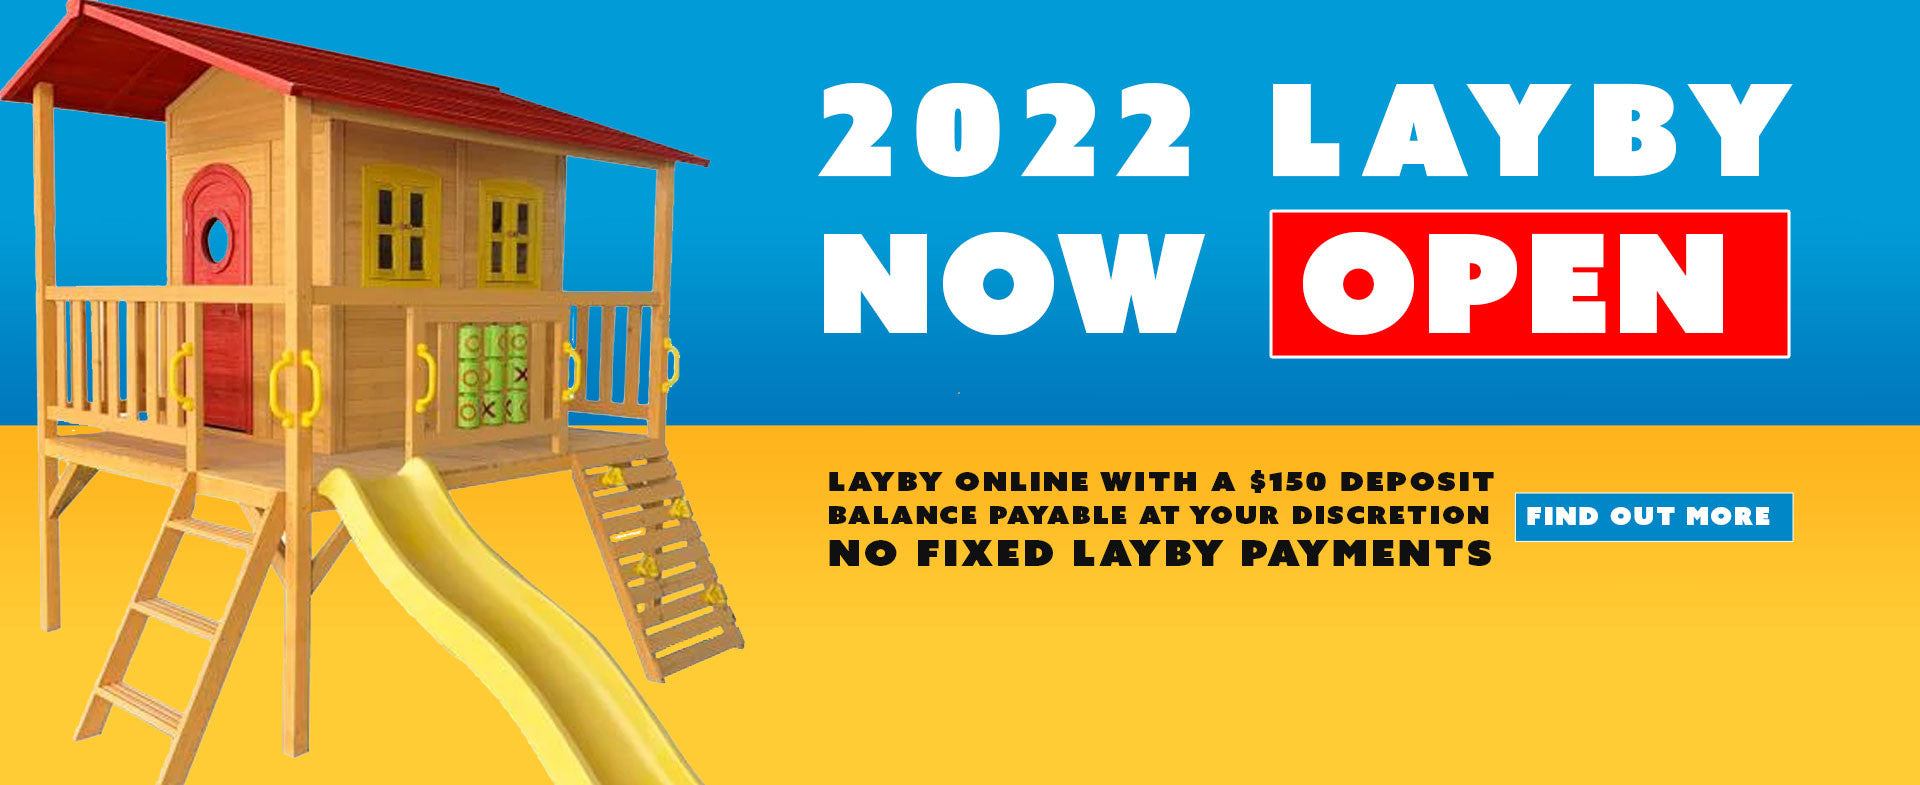 Layby banner for cubby houses, Updated via facebook early march 2020